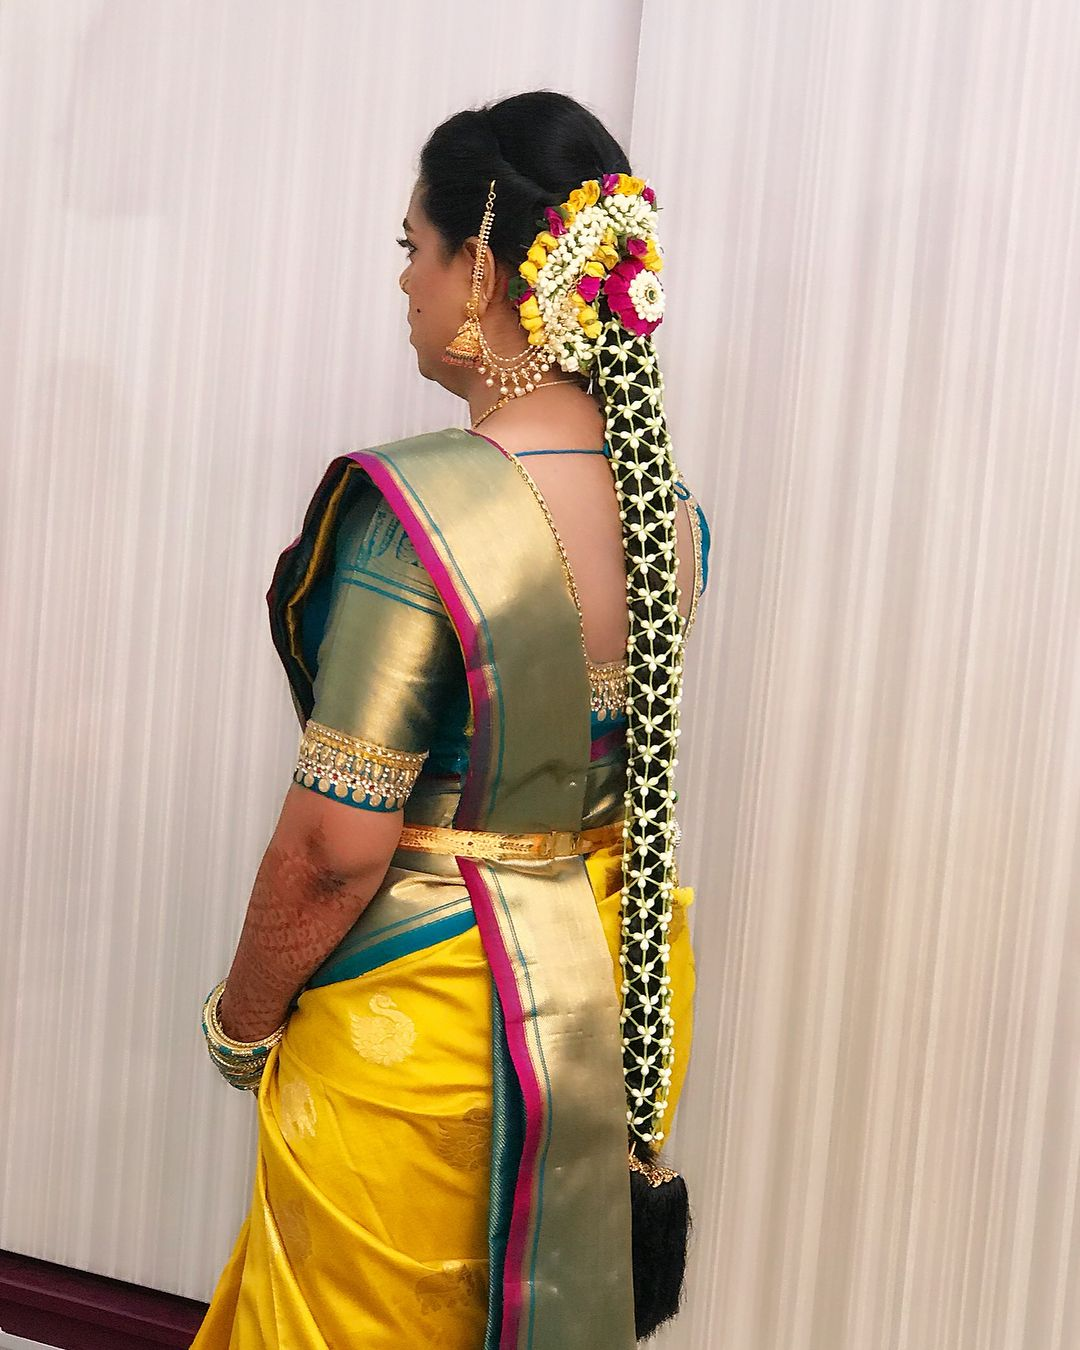 Kerala Party Hairstyles: Stunning Kerala Bridal Hairstyle With Long Braid With